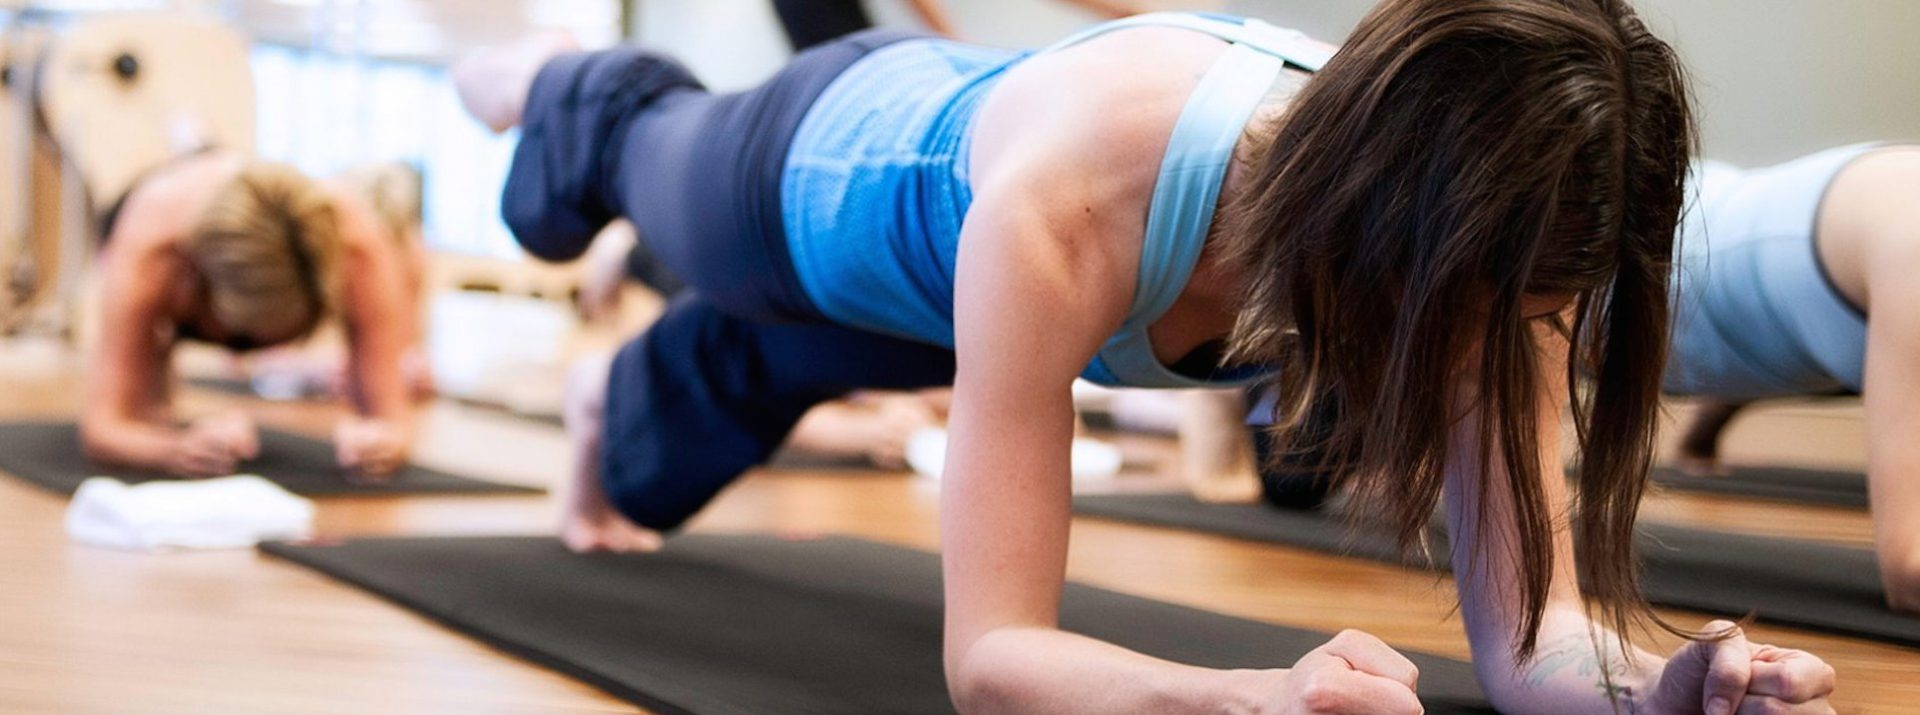 We offer individual and group Pilates classes